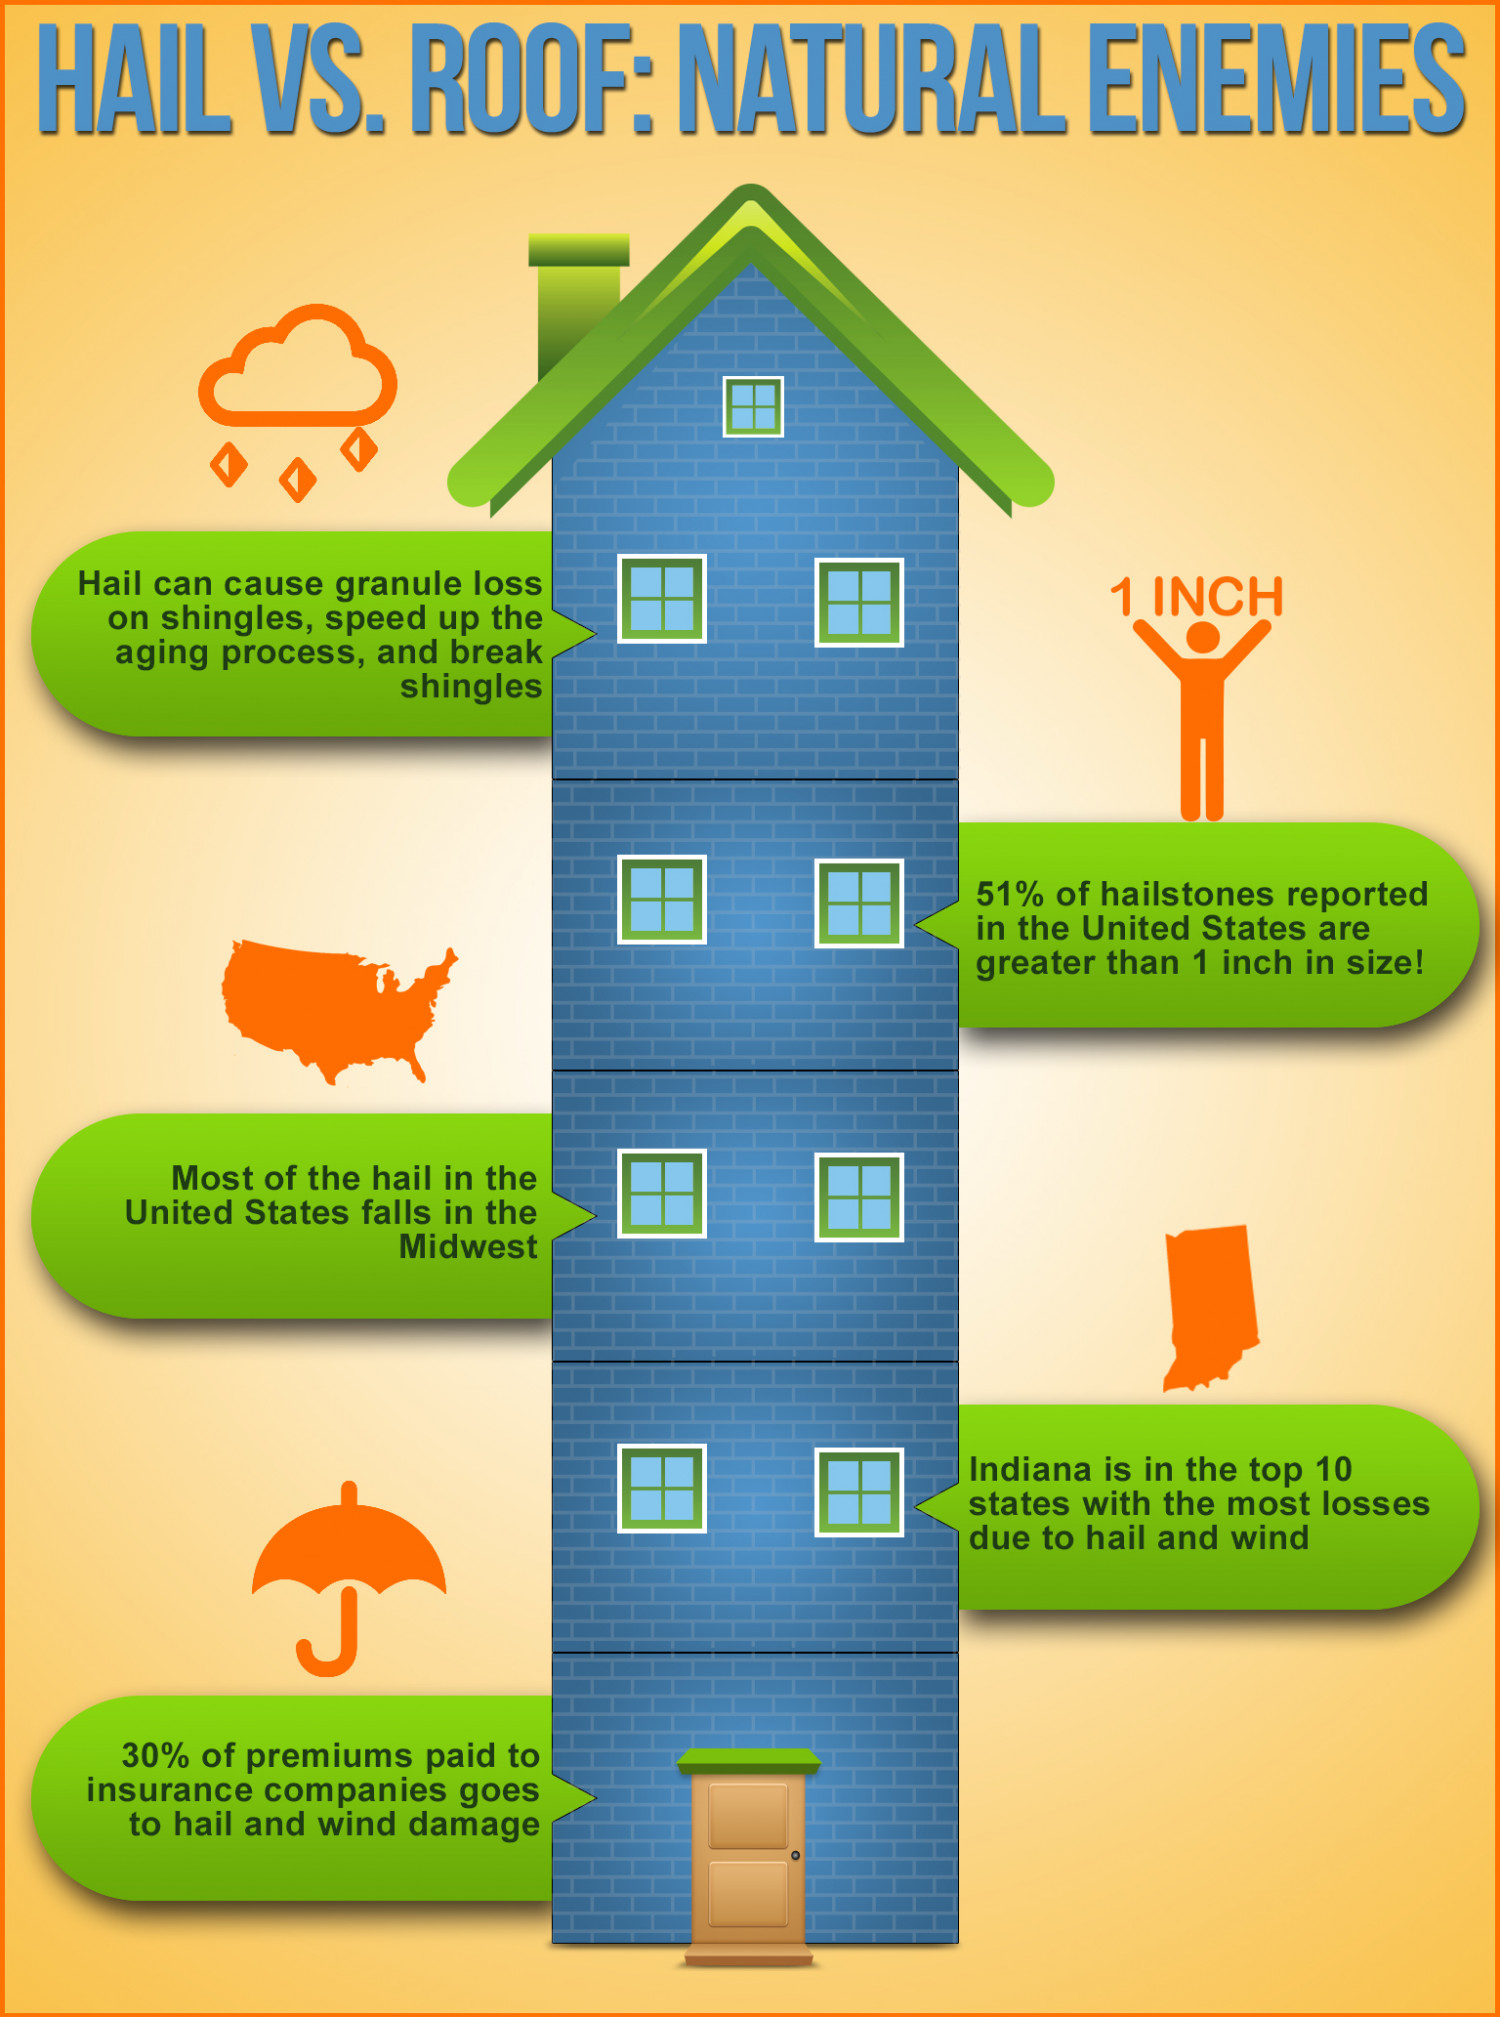 Hail Vs. Roof: Natural Enemies  Infographic